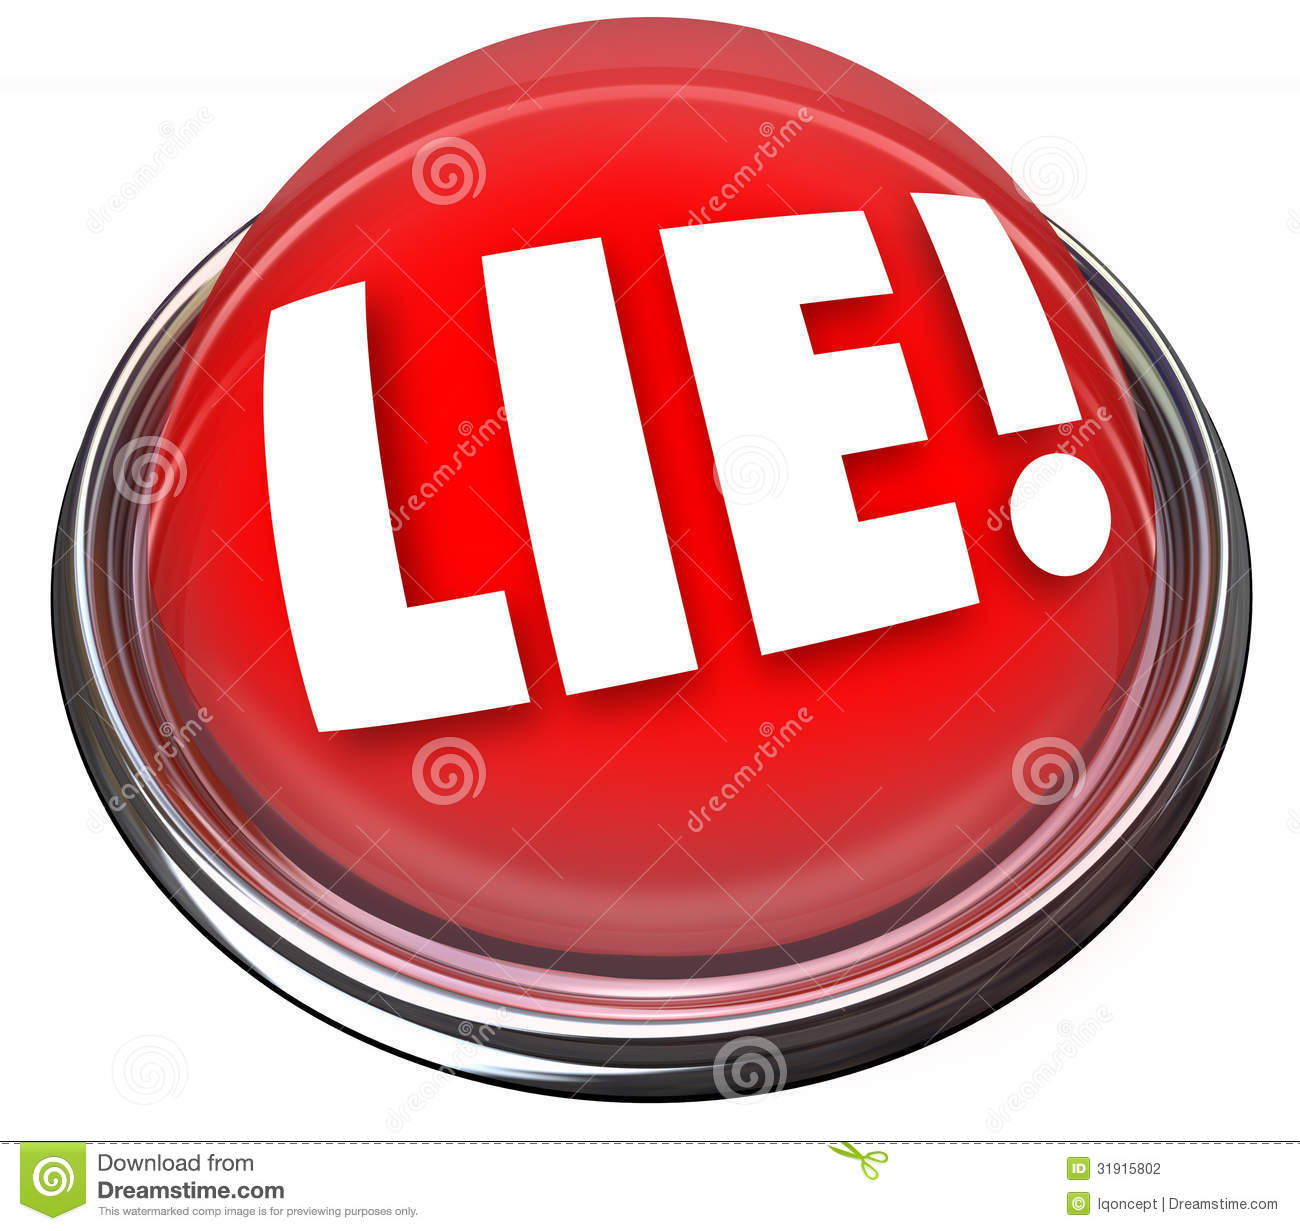 The Word Lie On A Red Light Or Button To Indicate Someone Is Lying Or